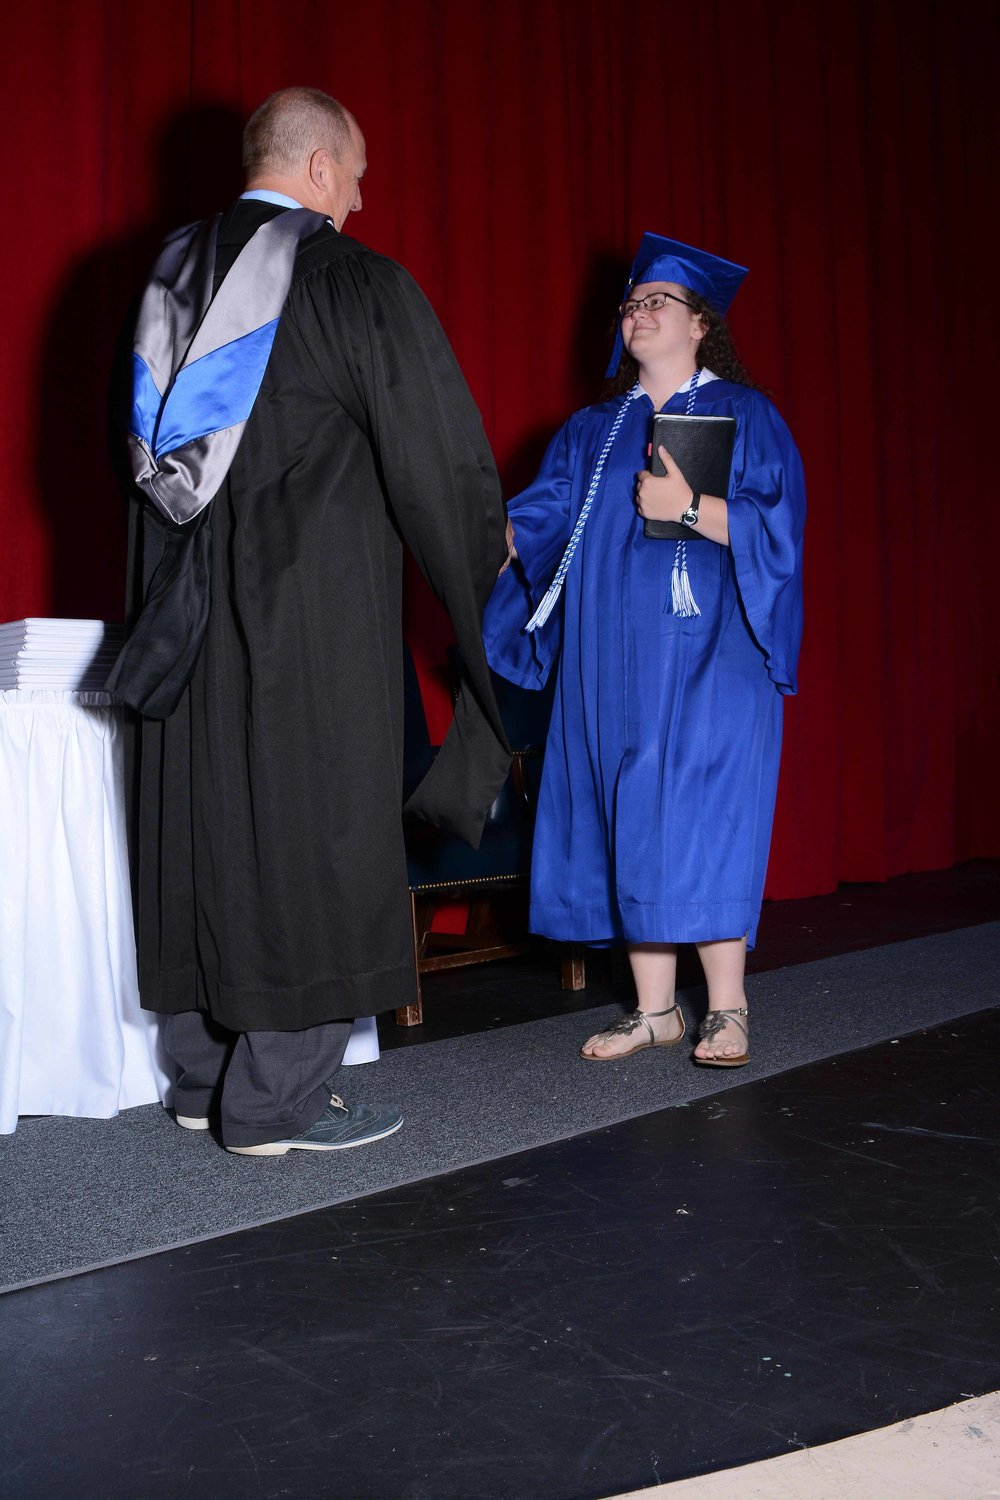 May14 Commencement35.jpg